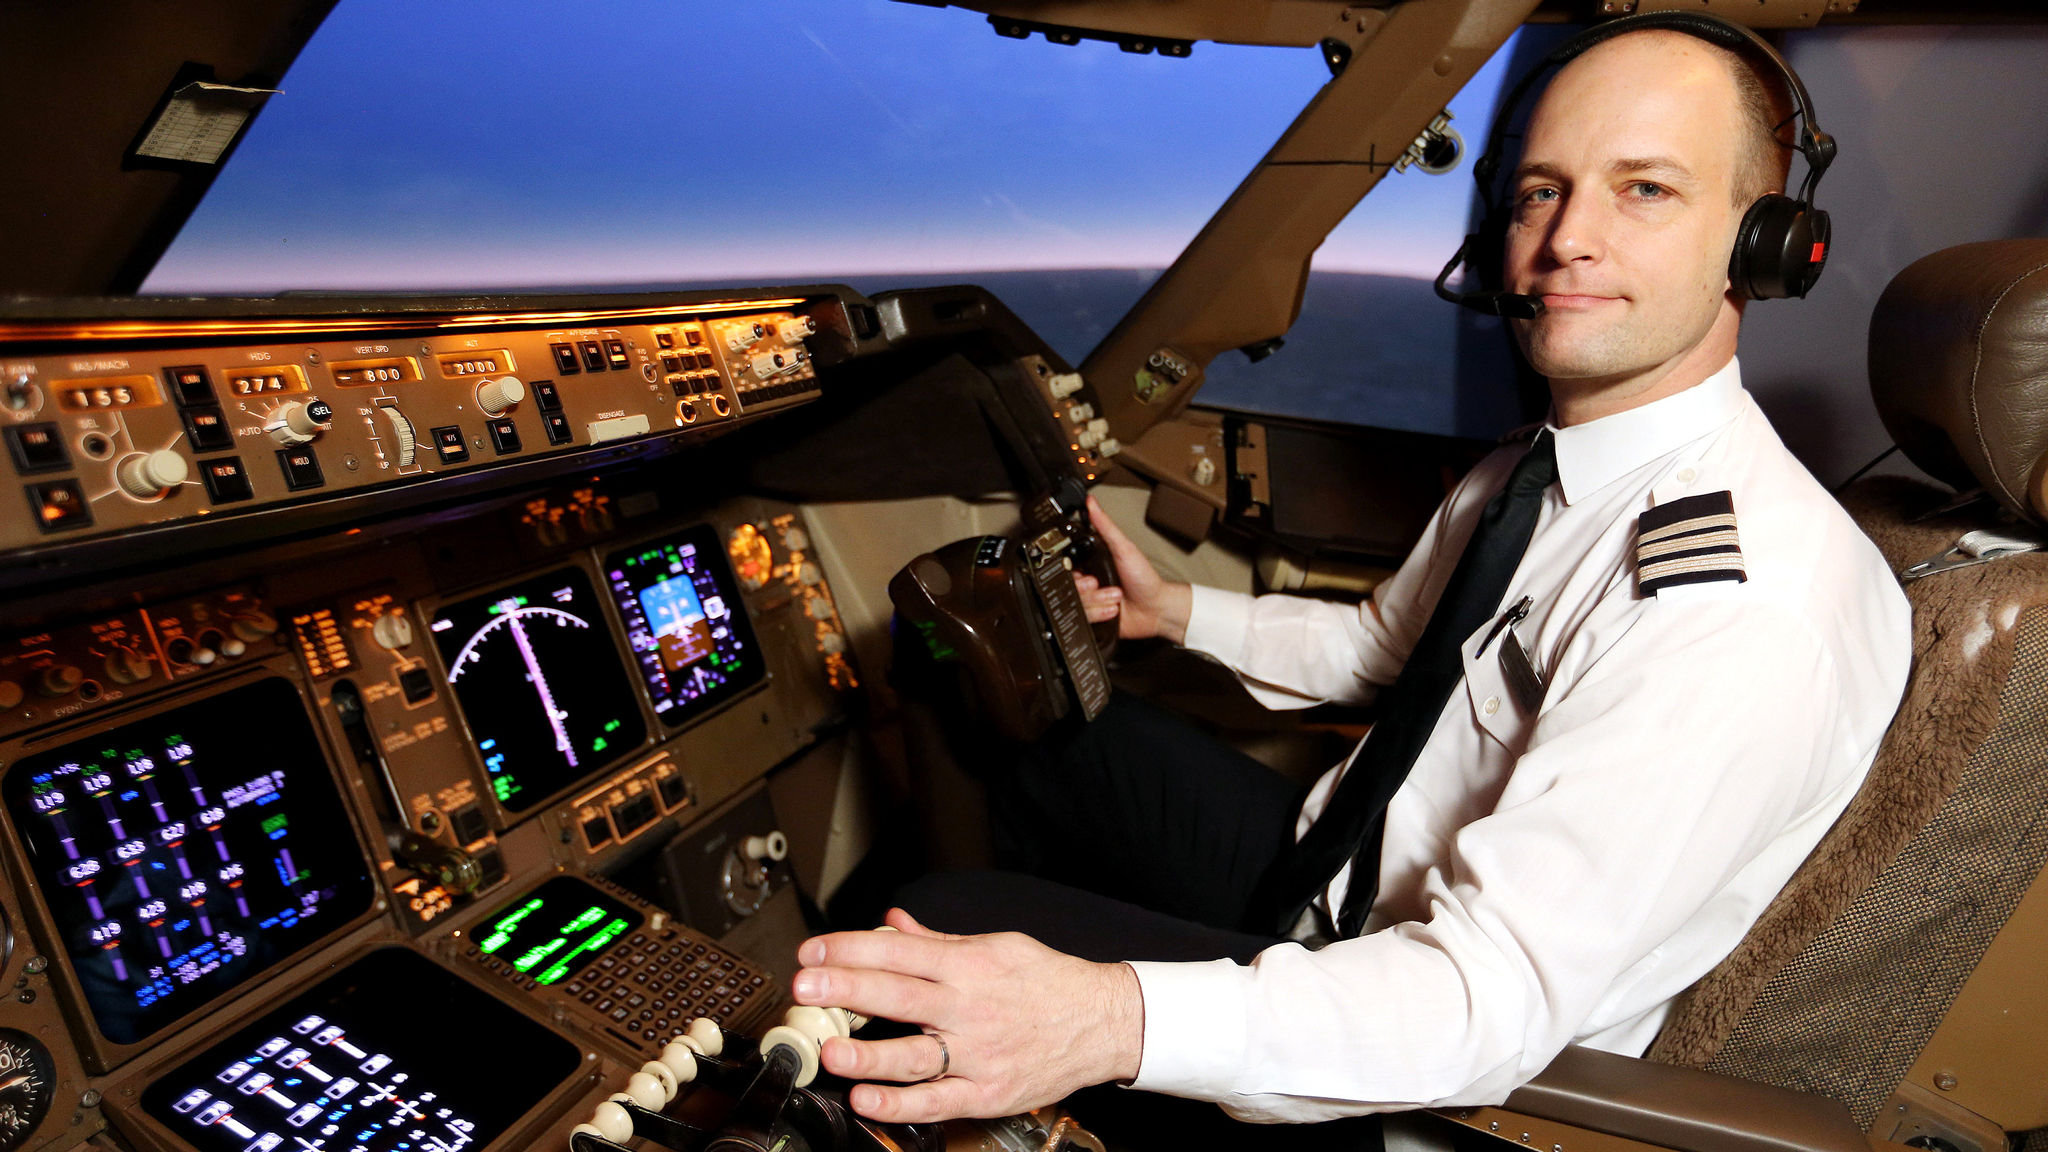 The captain's cabin: the secret suites where pilots sleep in